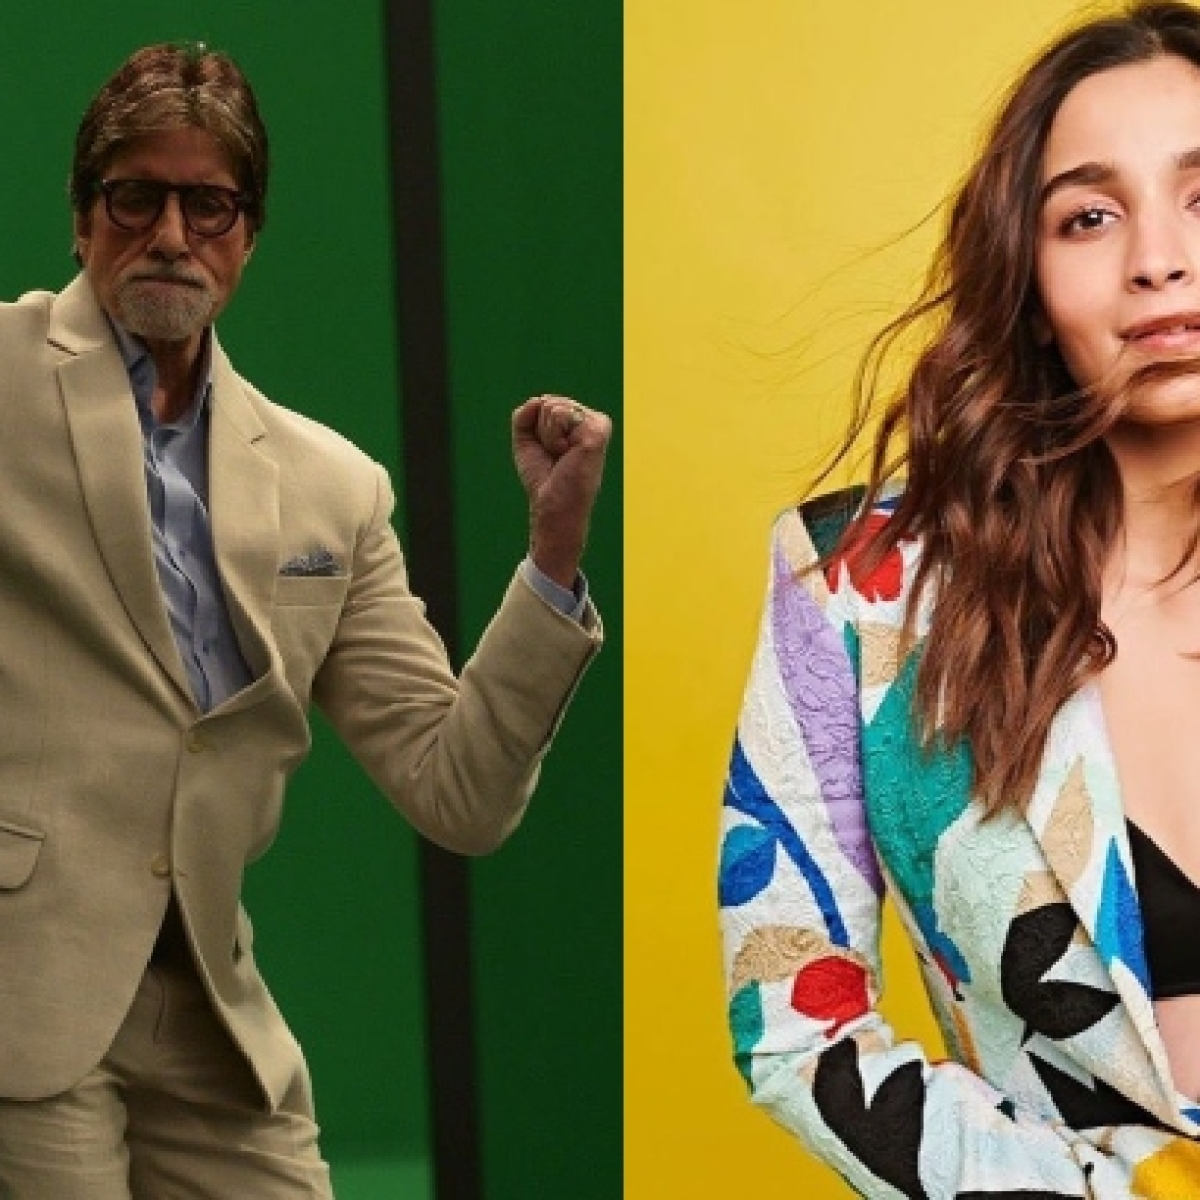 Amitabh Bachchan, Shah Rukh Khan, Akshay Kumar, Alia Bhatt and others make it to Forbes Asia 100 Digital Stars list